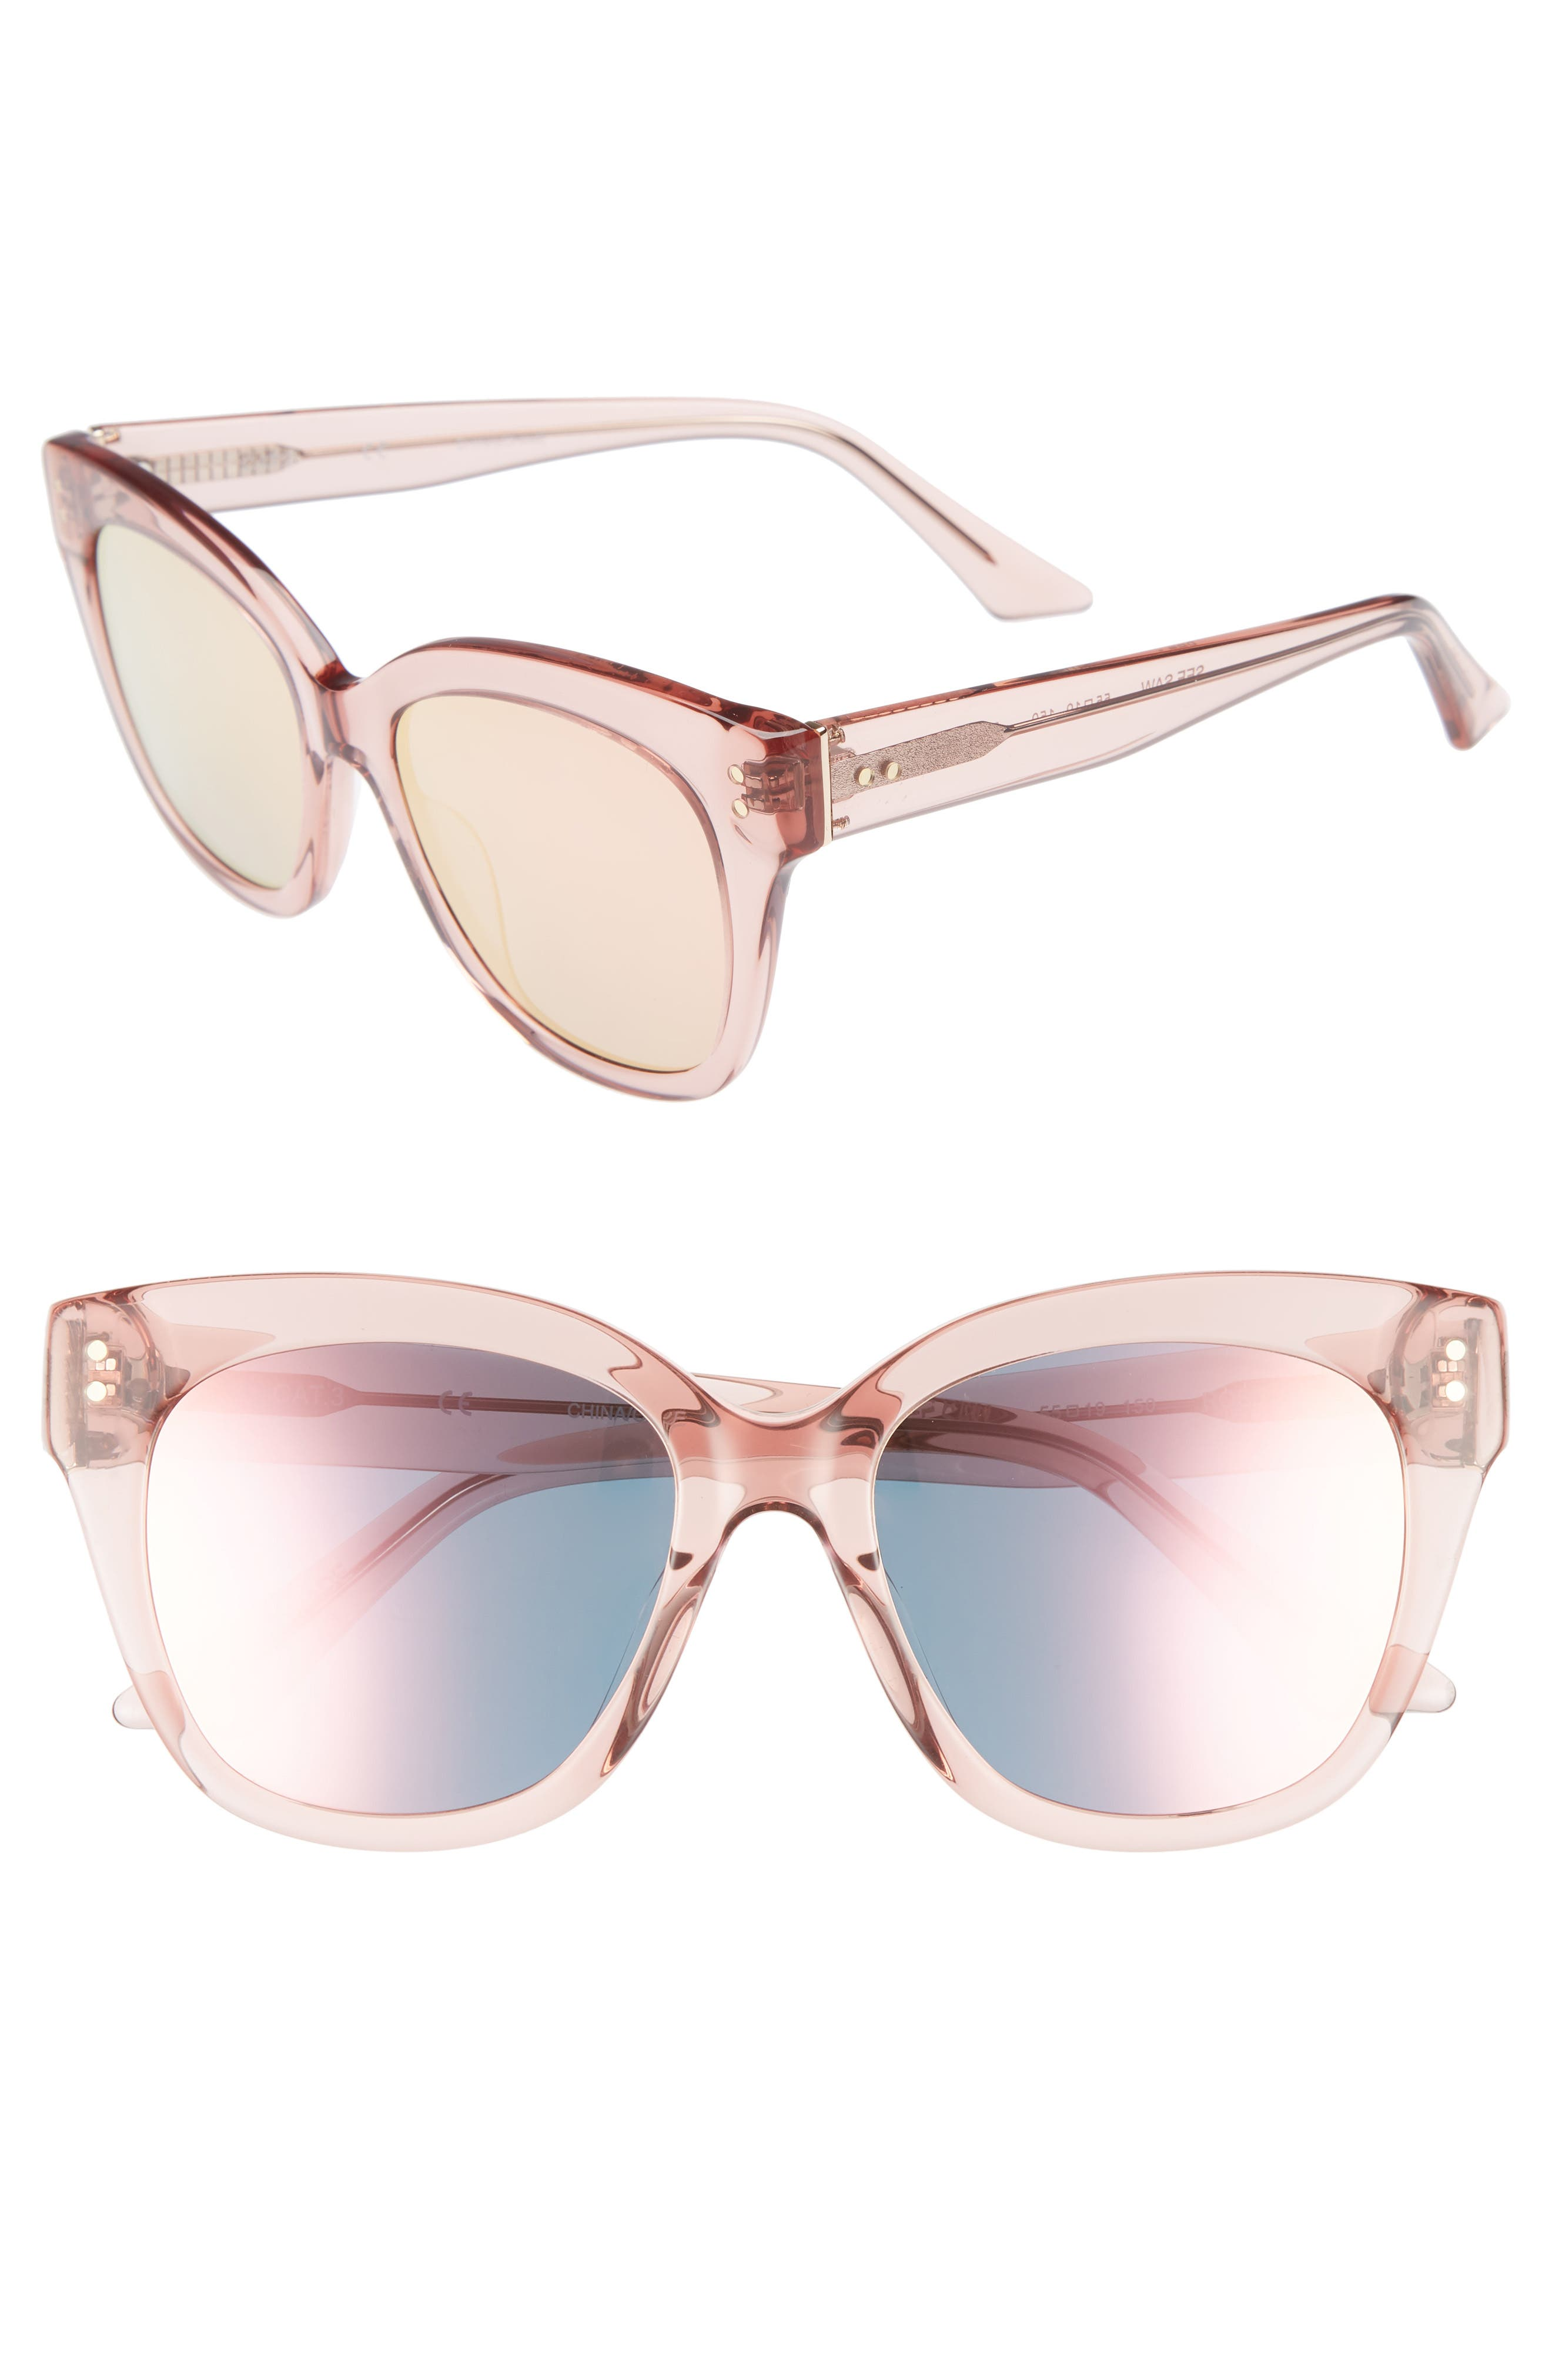 See Saw 55mm Cat Eye Sunglasses,                         Main,                         color, 650